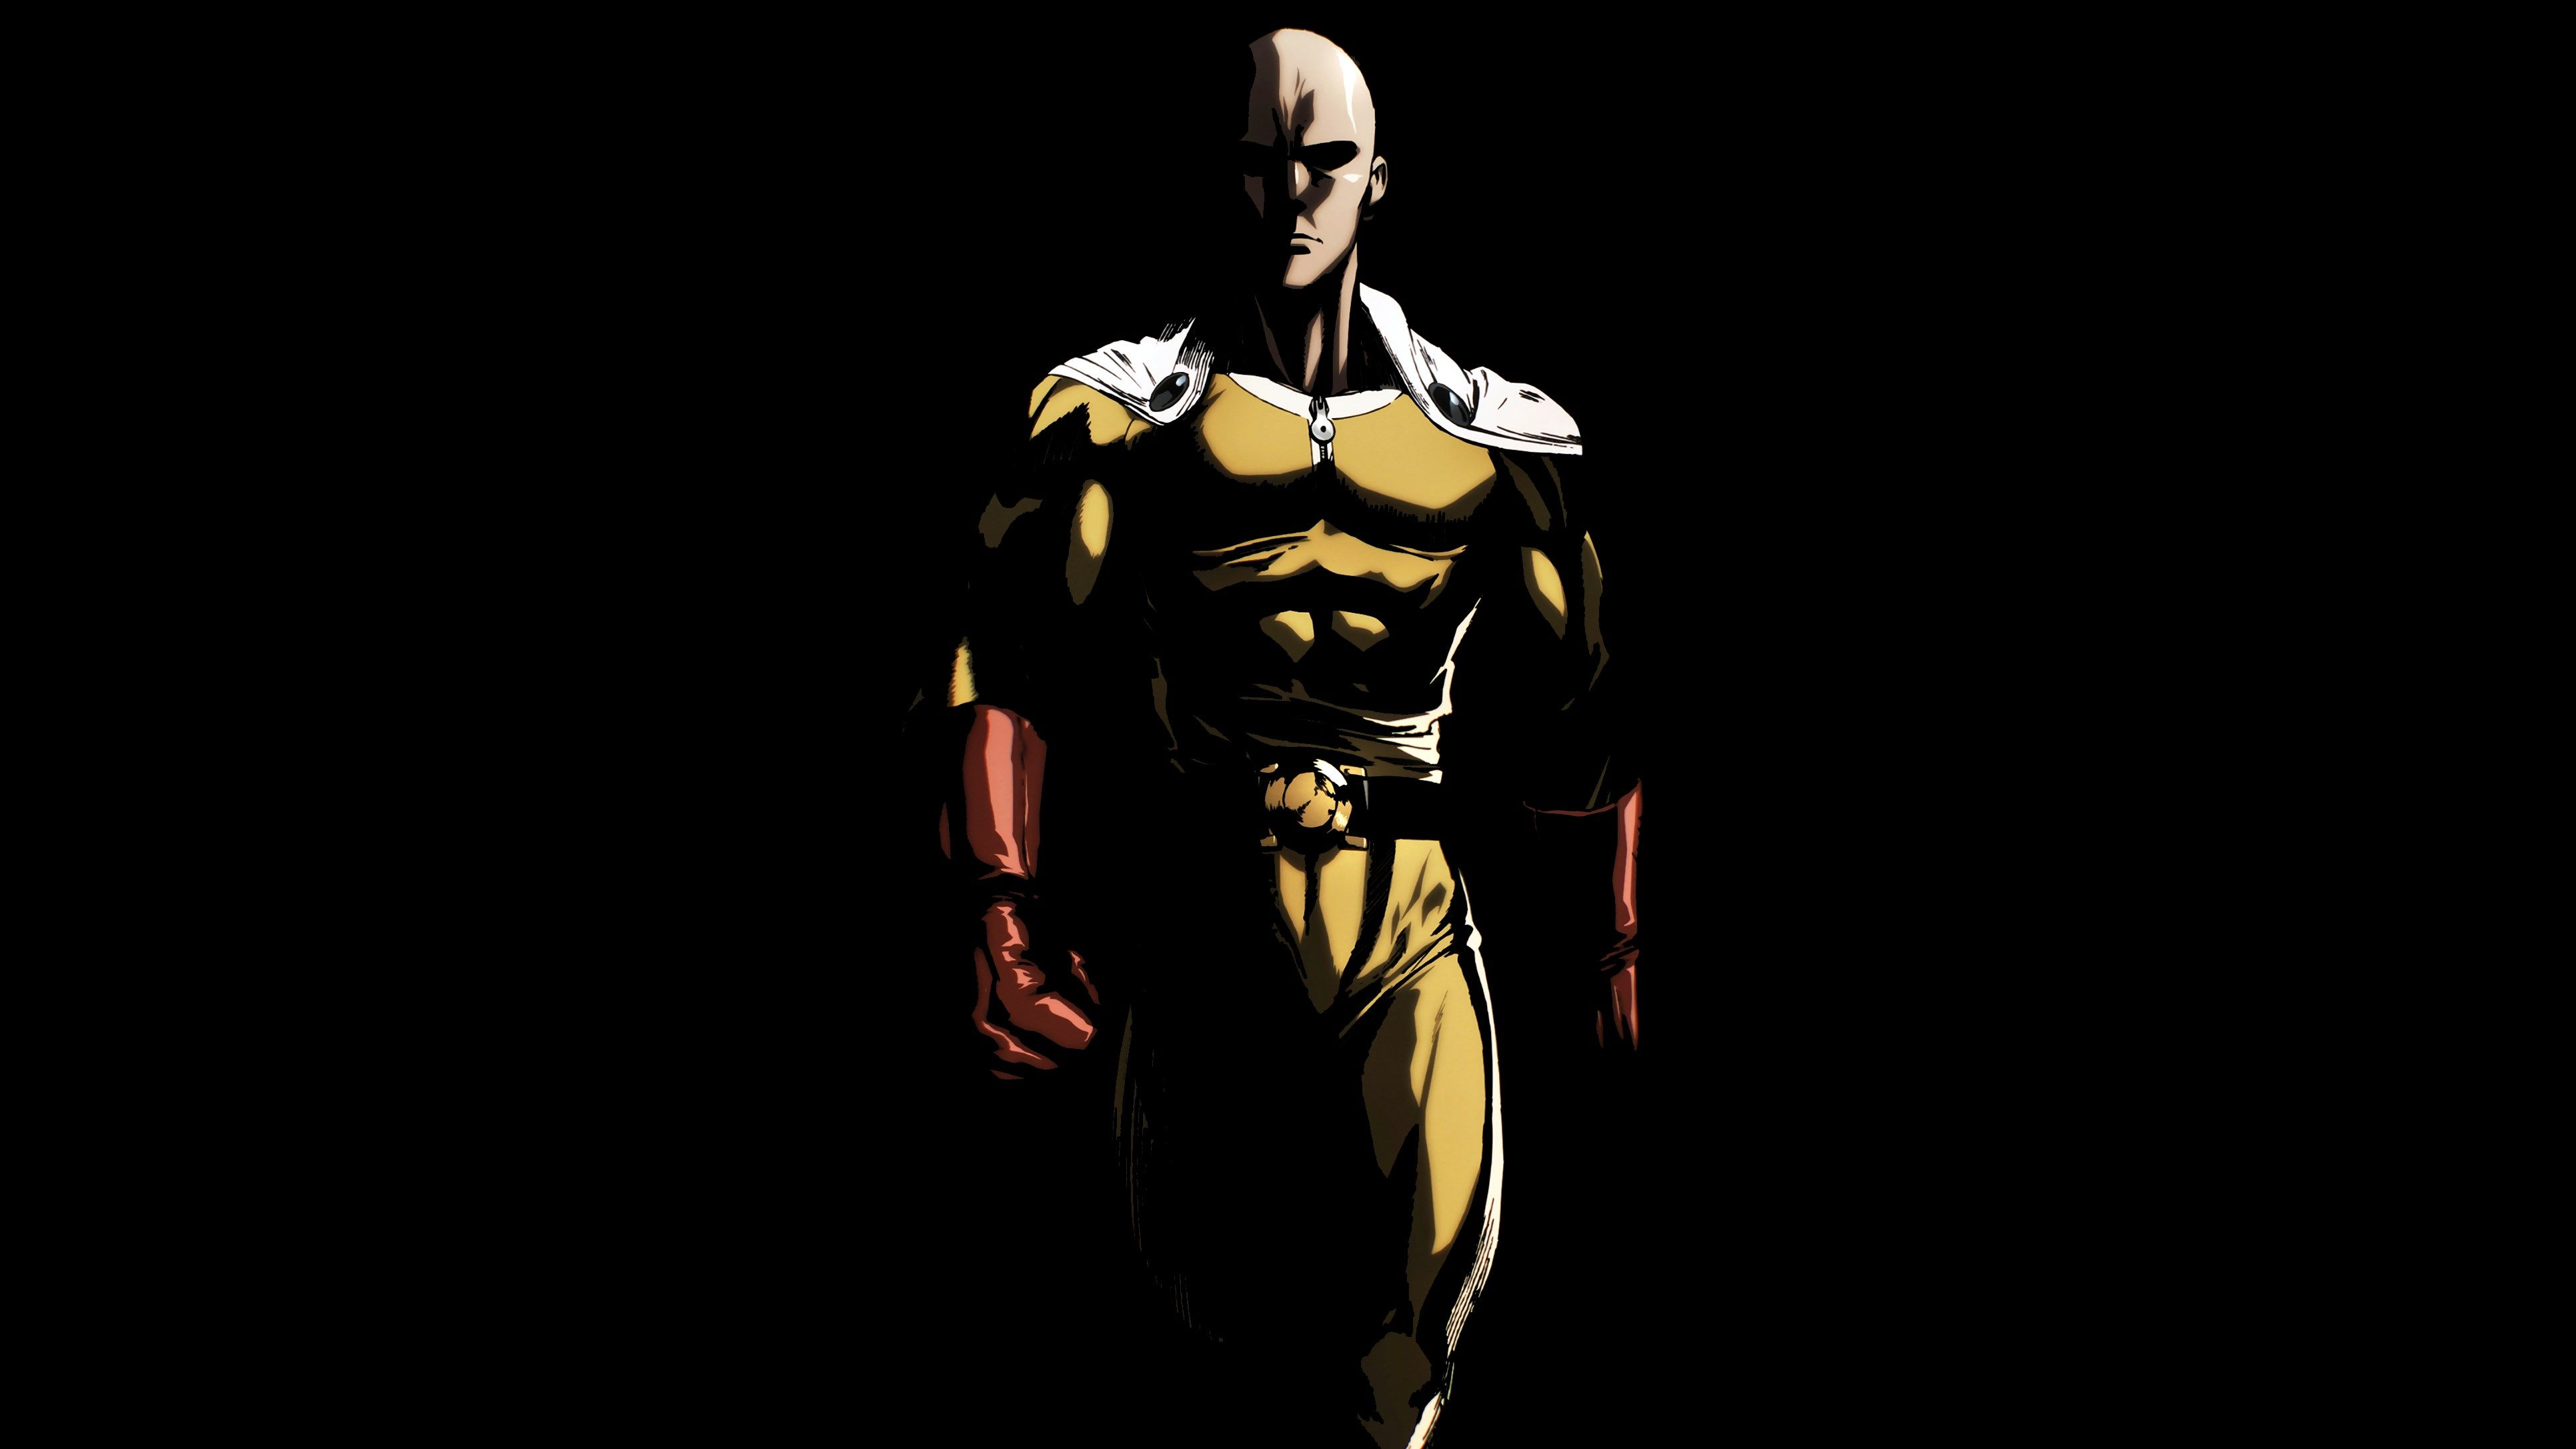 Free High Resolution Wallpaper One Punch Man By Osborn Brook 2017 03 14 Saitama One Punch Man Saitama One Punch One Punch Man